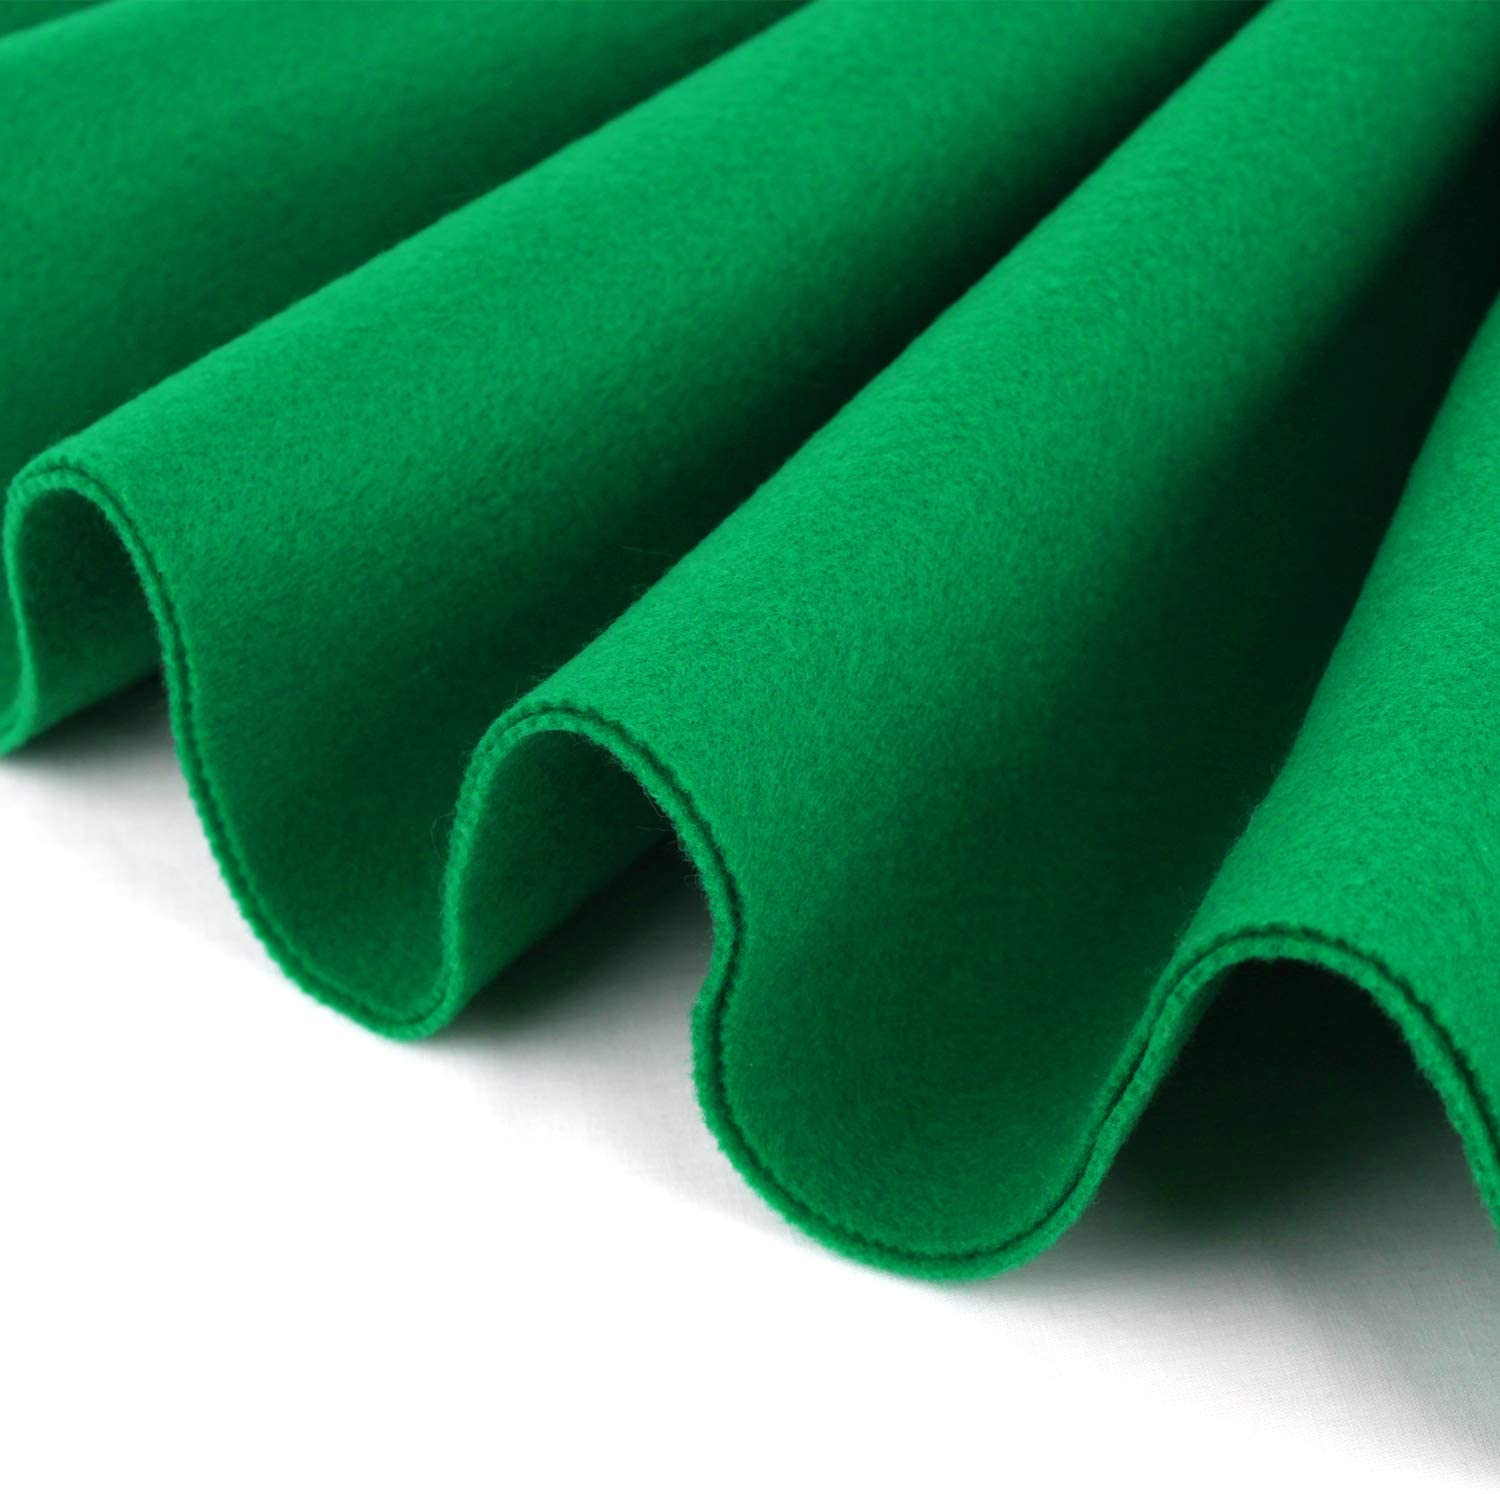 72 Inch Wide 1.5mm Thick Forest Green, 1 Yard DIY Arts /& Crafts Cushion and Padding Acrylic Felt Fabric Sewing Barcelonetta